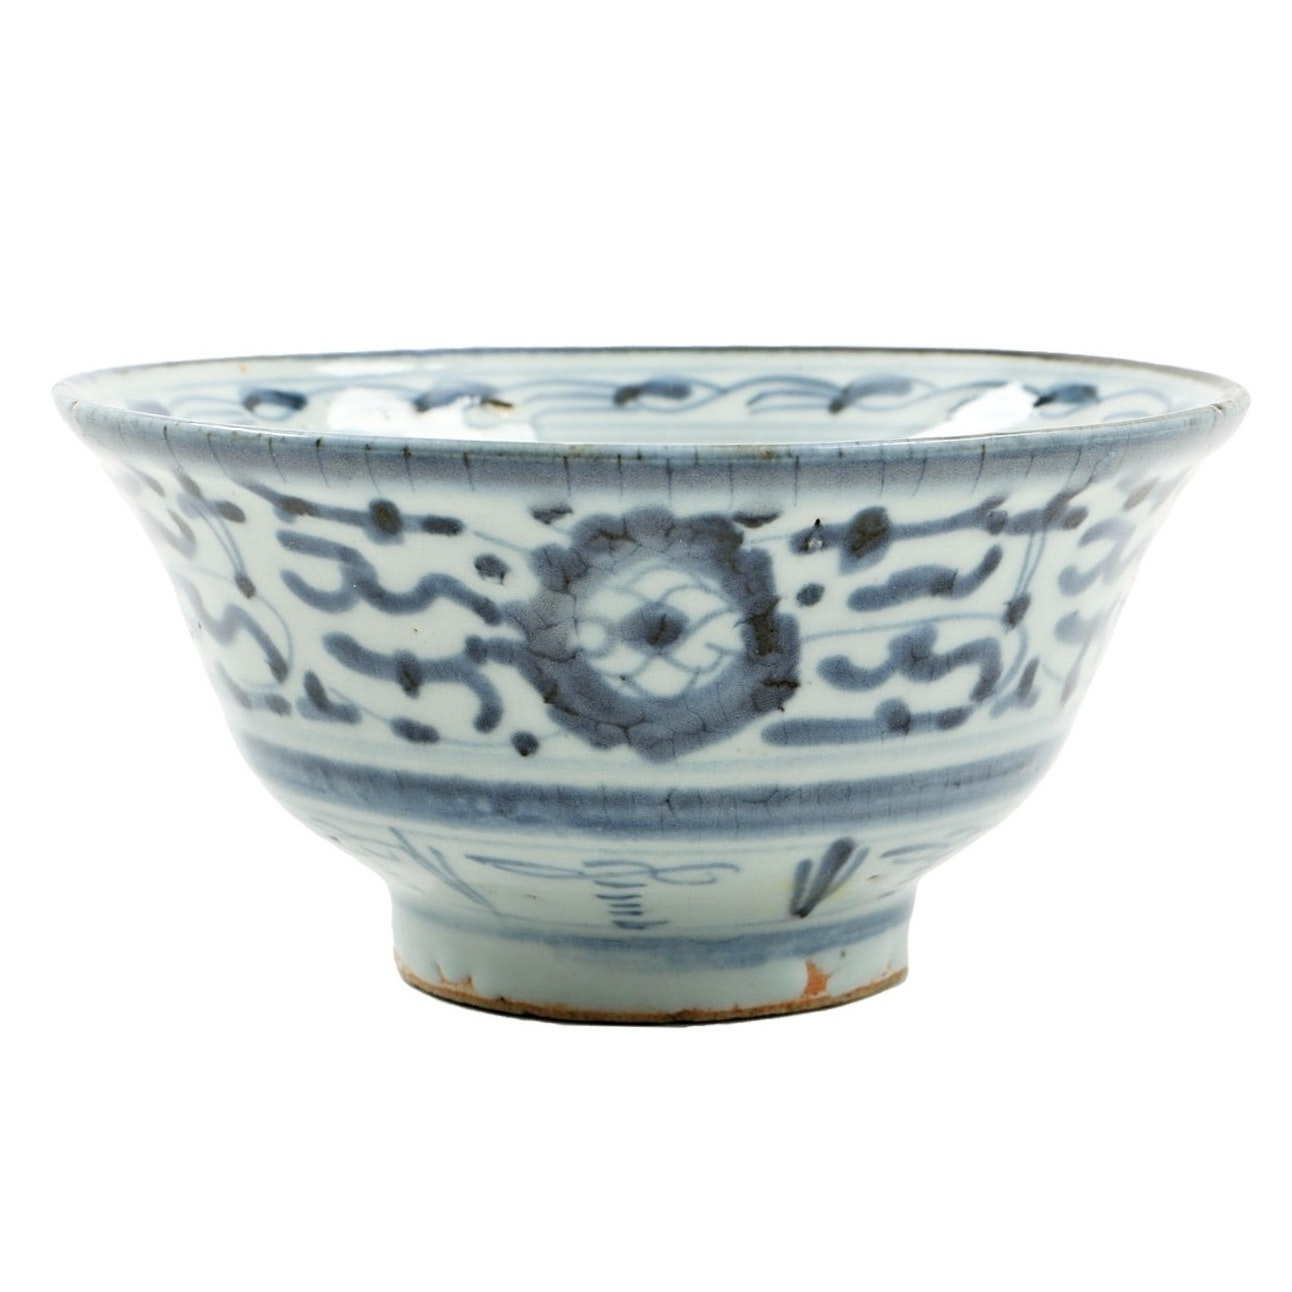 Chinese Qing Dynasty Period Blue and White Porcelain Bowl